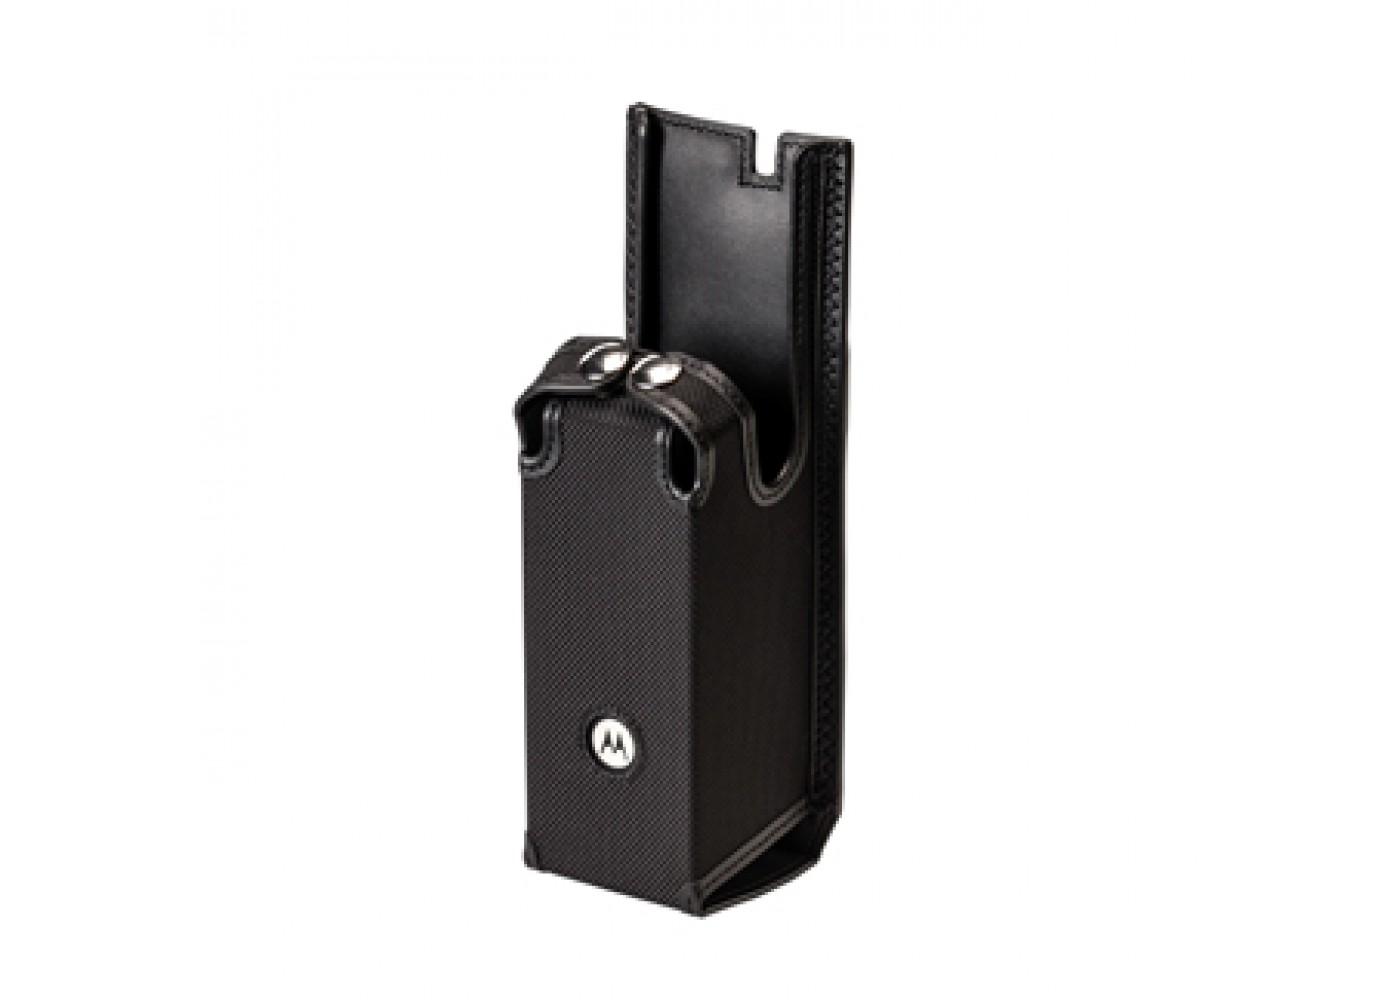 Pmln6712 clamshell battery carry case for Clamshell casing